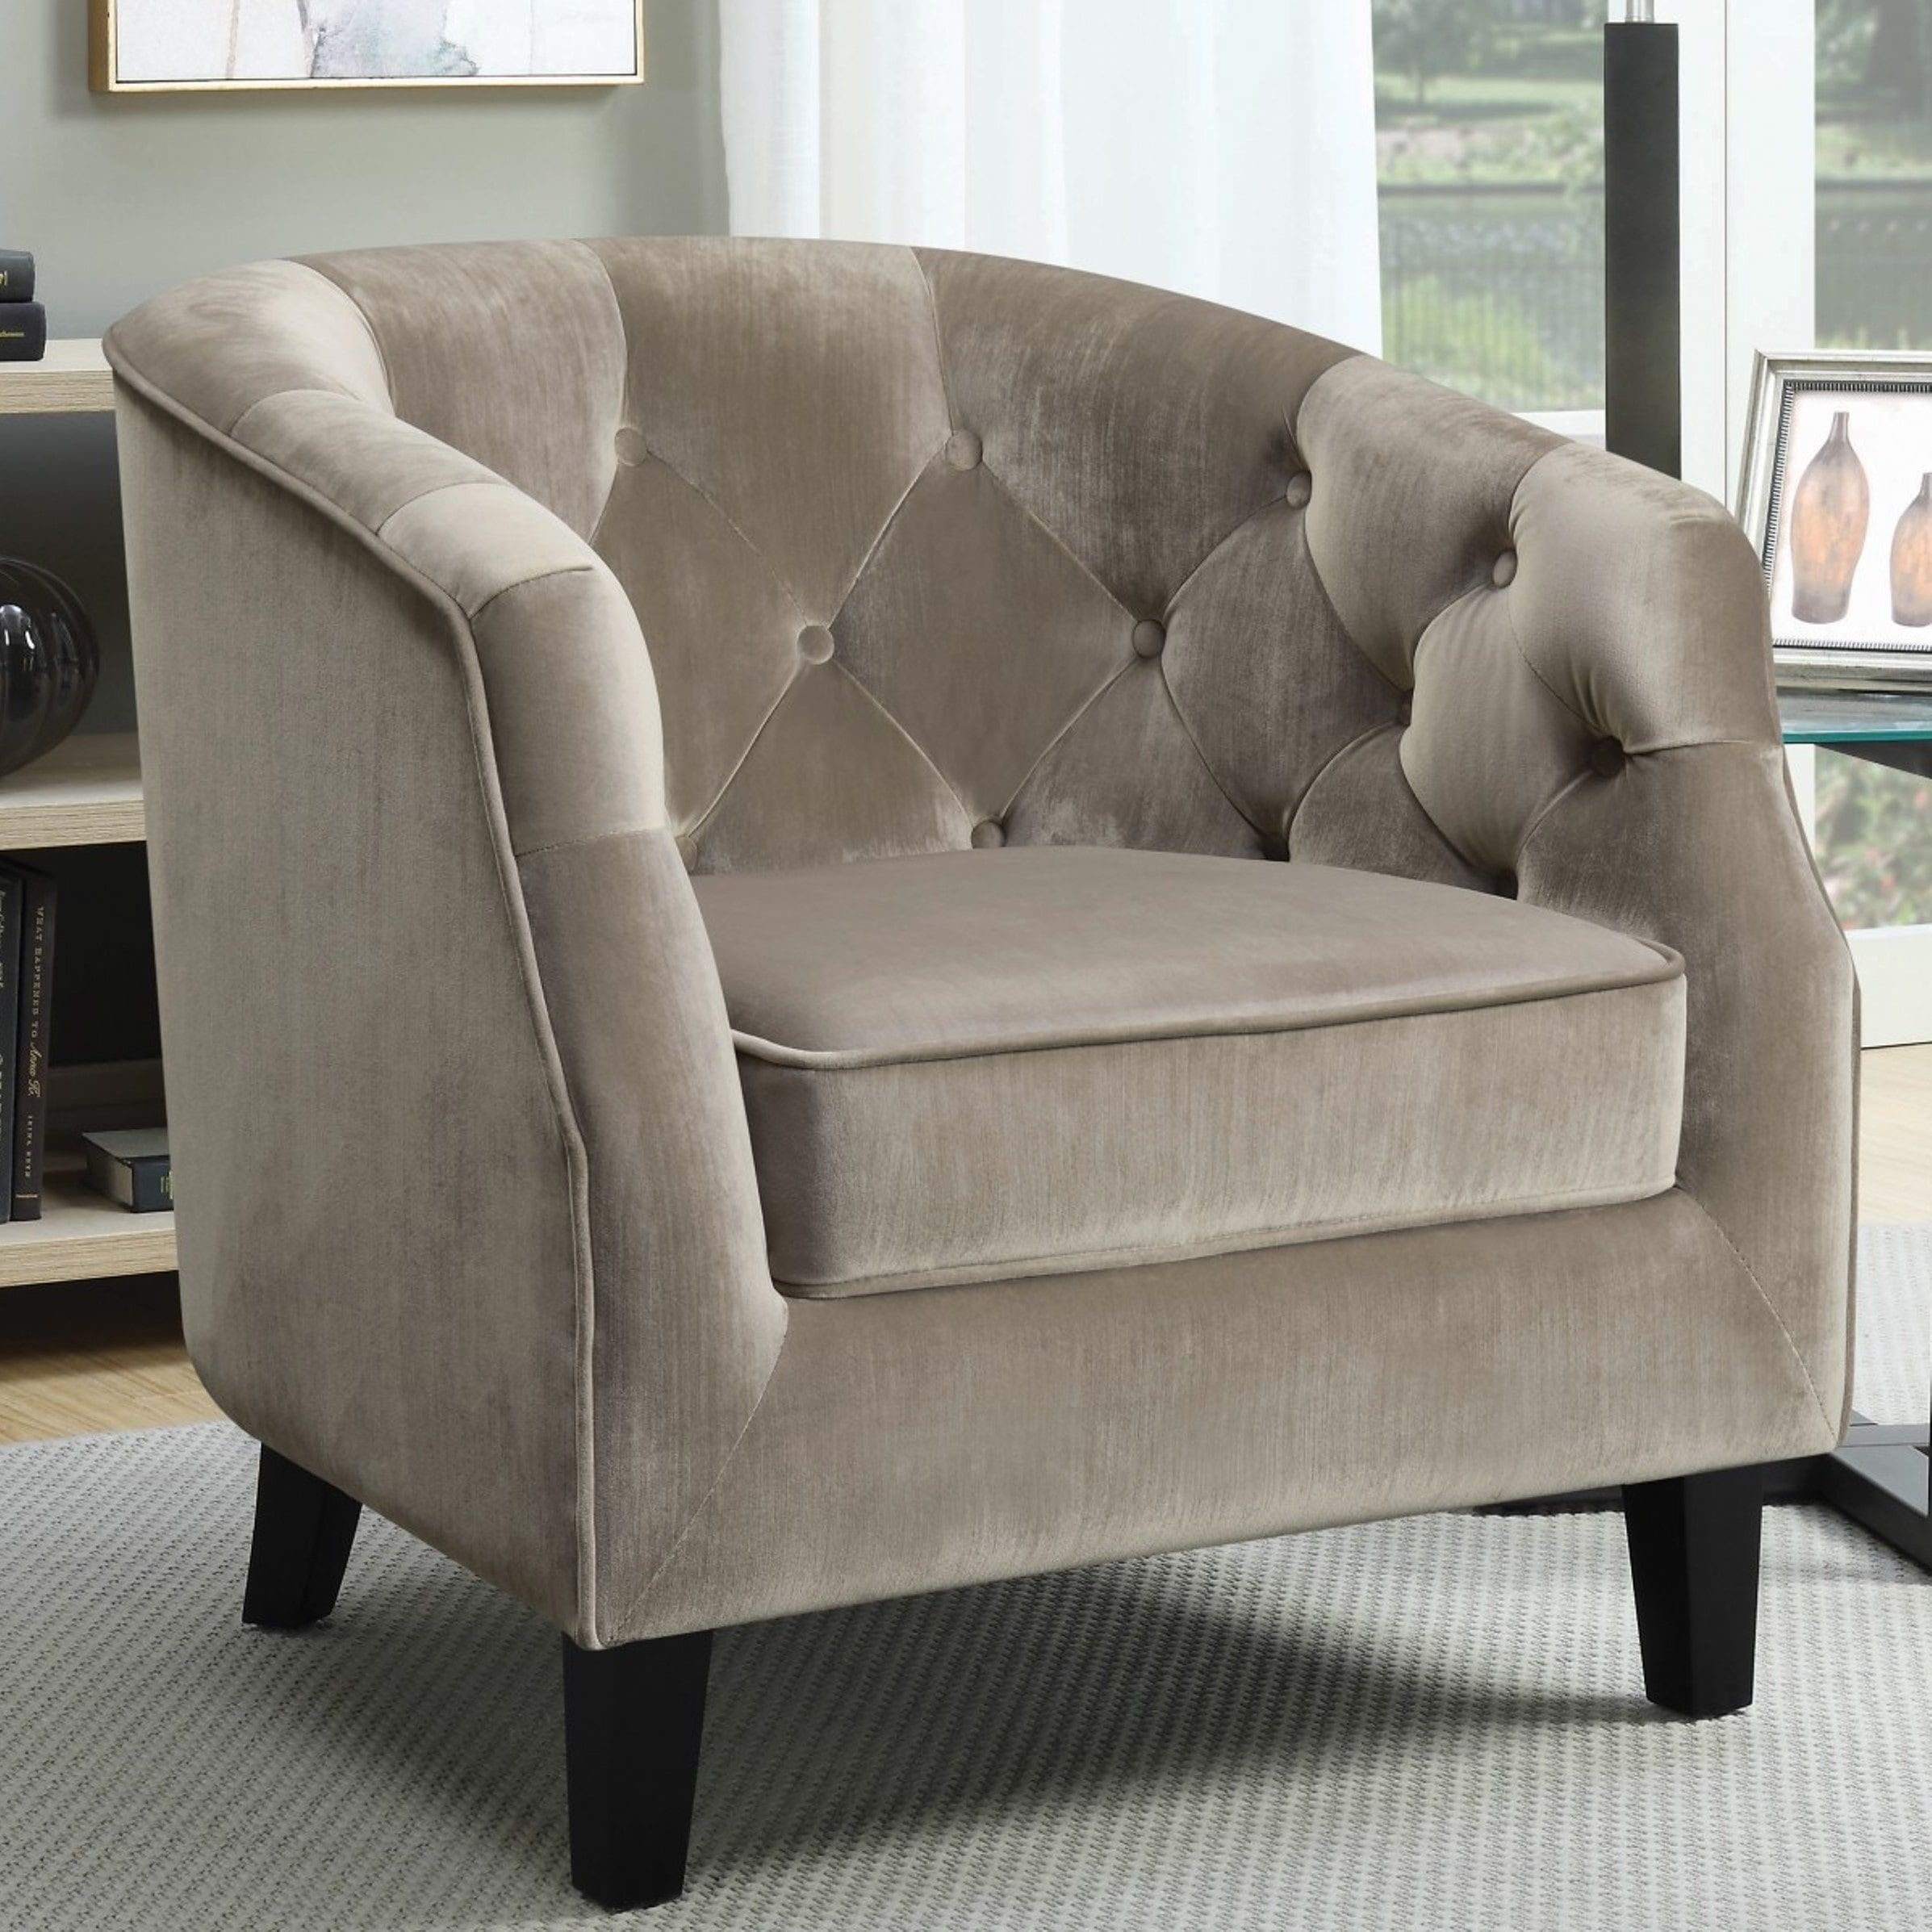 Groovy Contemporary Barrel Style Button Tufted Taupe Velvet Accent Bralicious Painted Fabric Chair Ideas Braliciousco